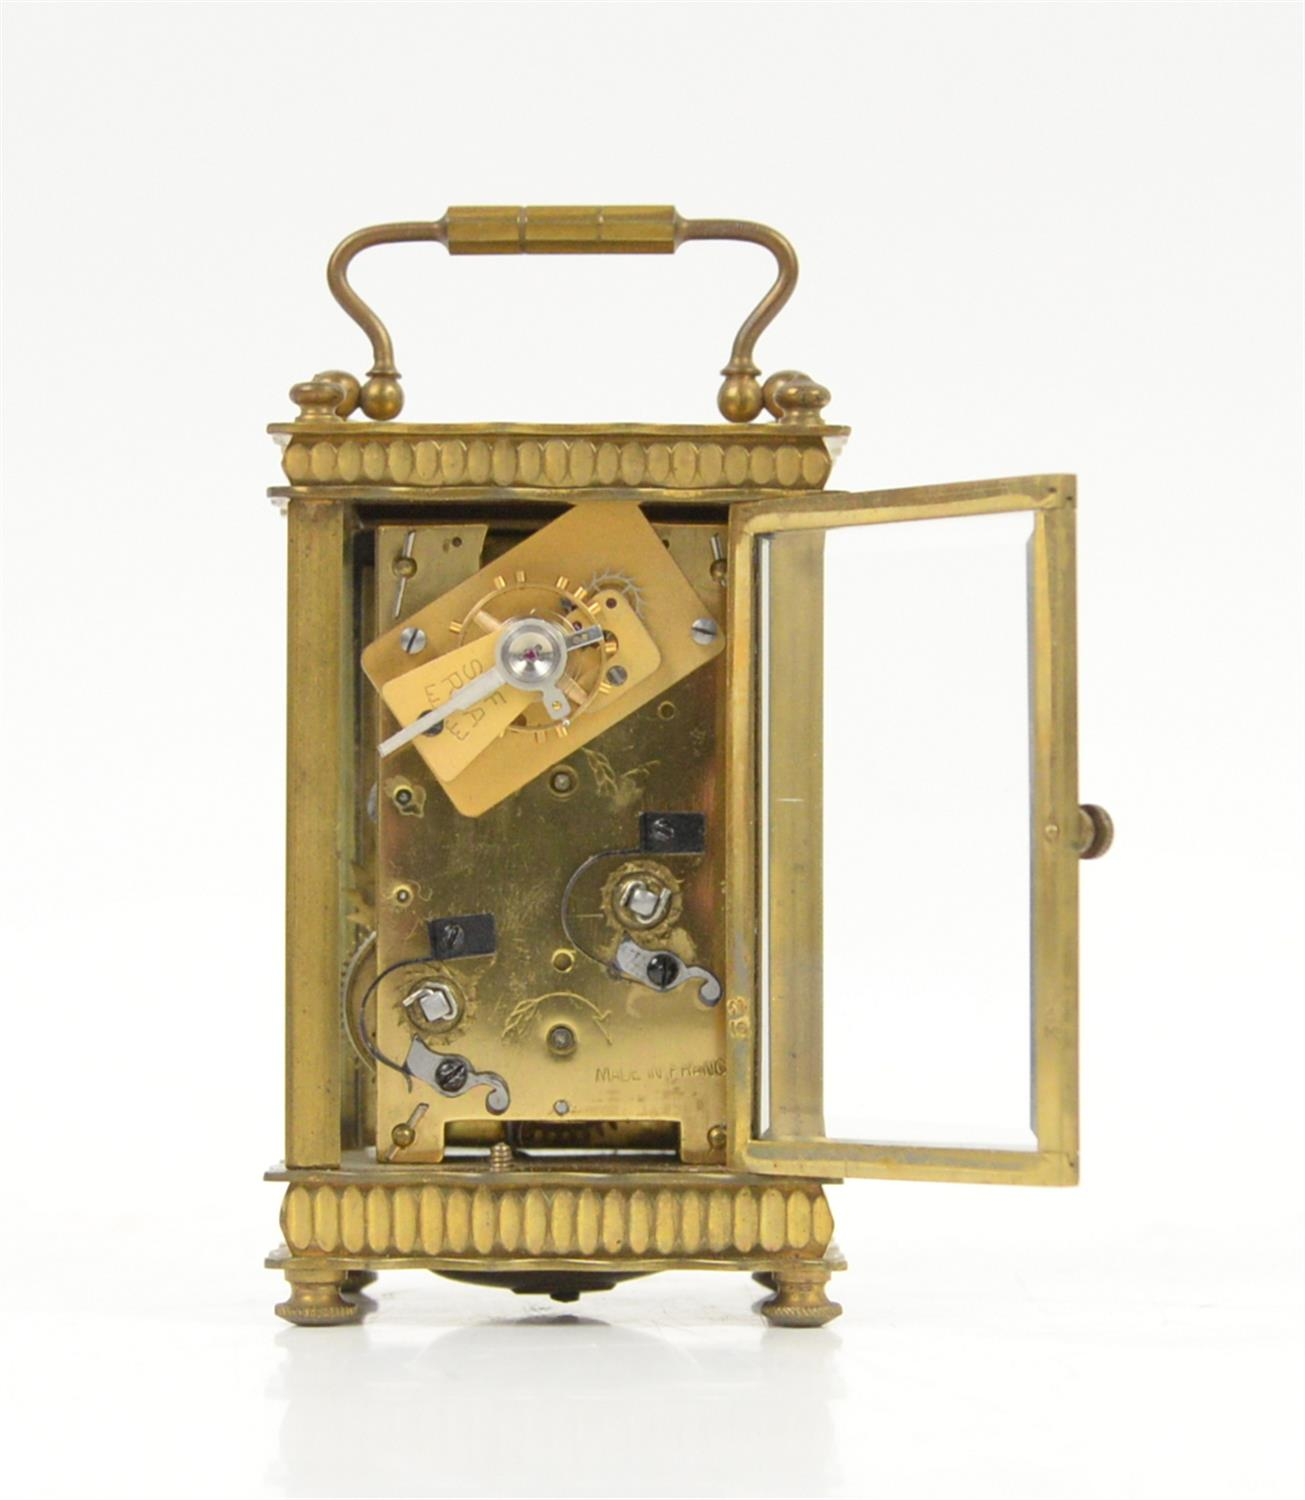 French brass carriage clock, the silvered dial with Arabic numerals and seconds subsidiary dial, - Image 4 of 5